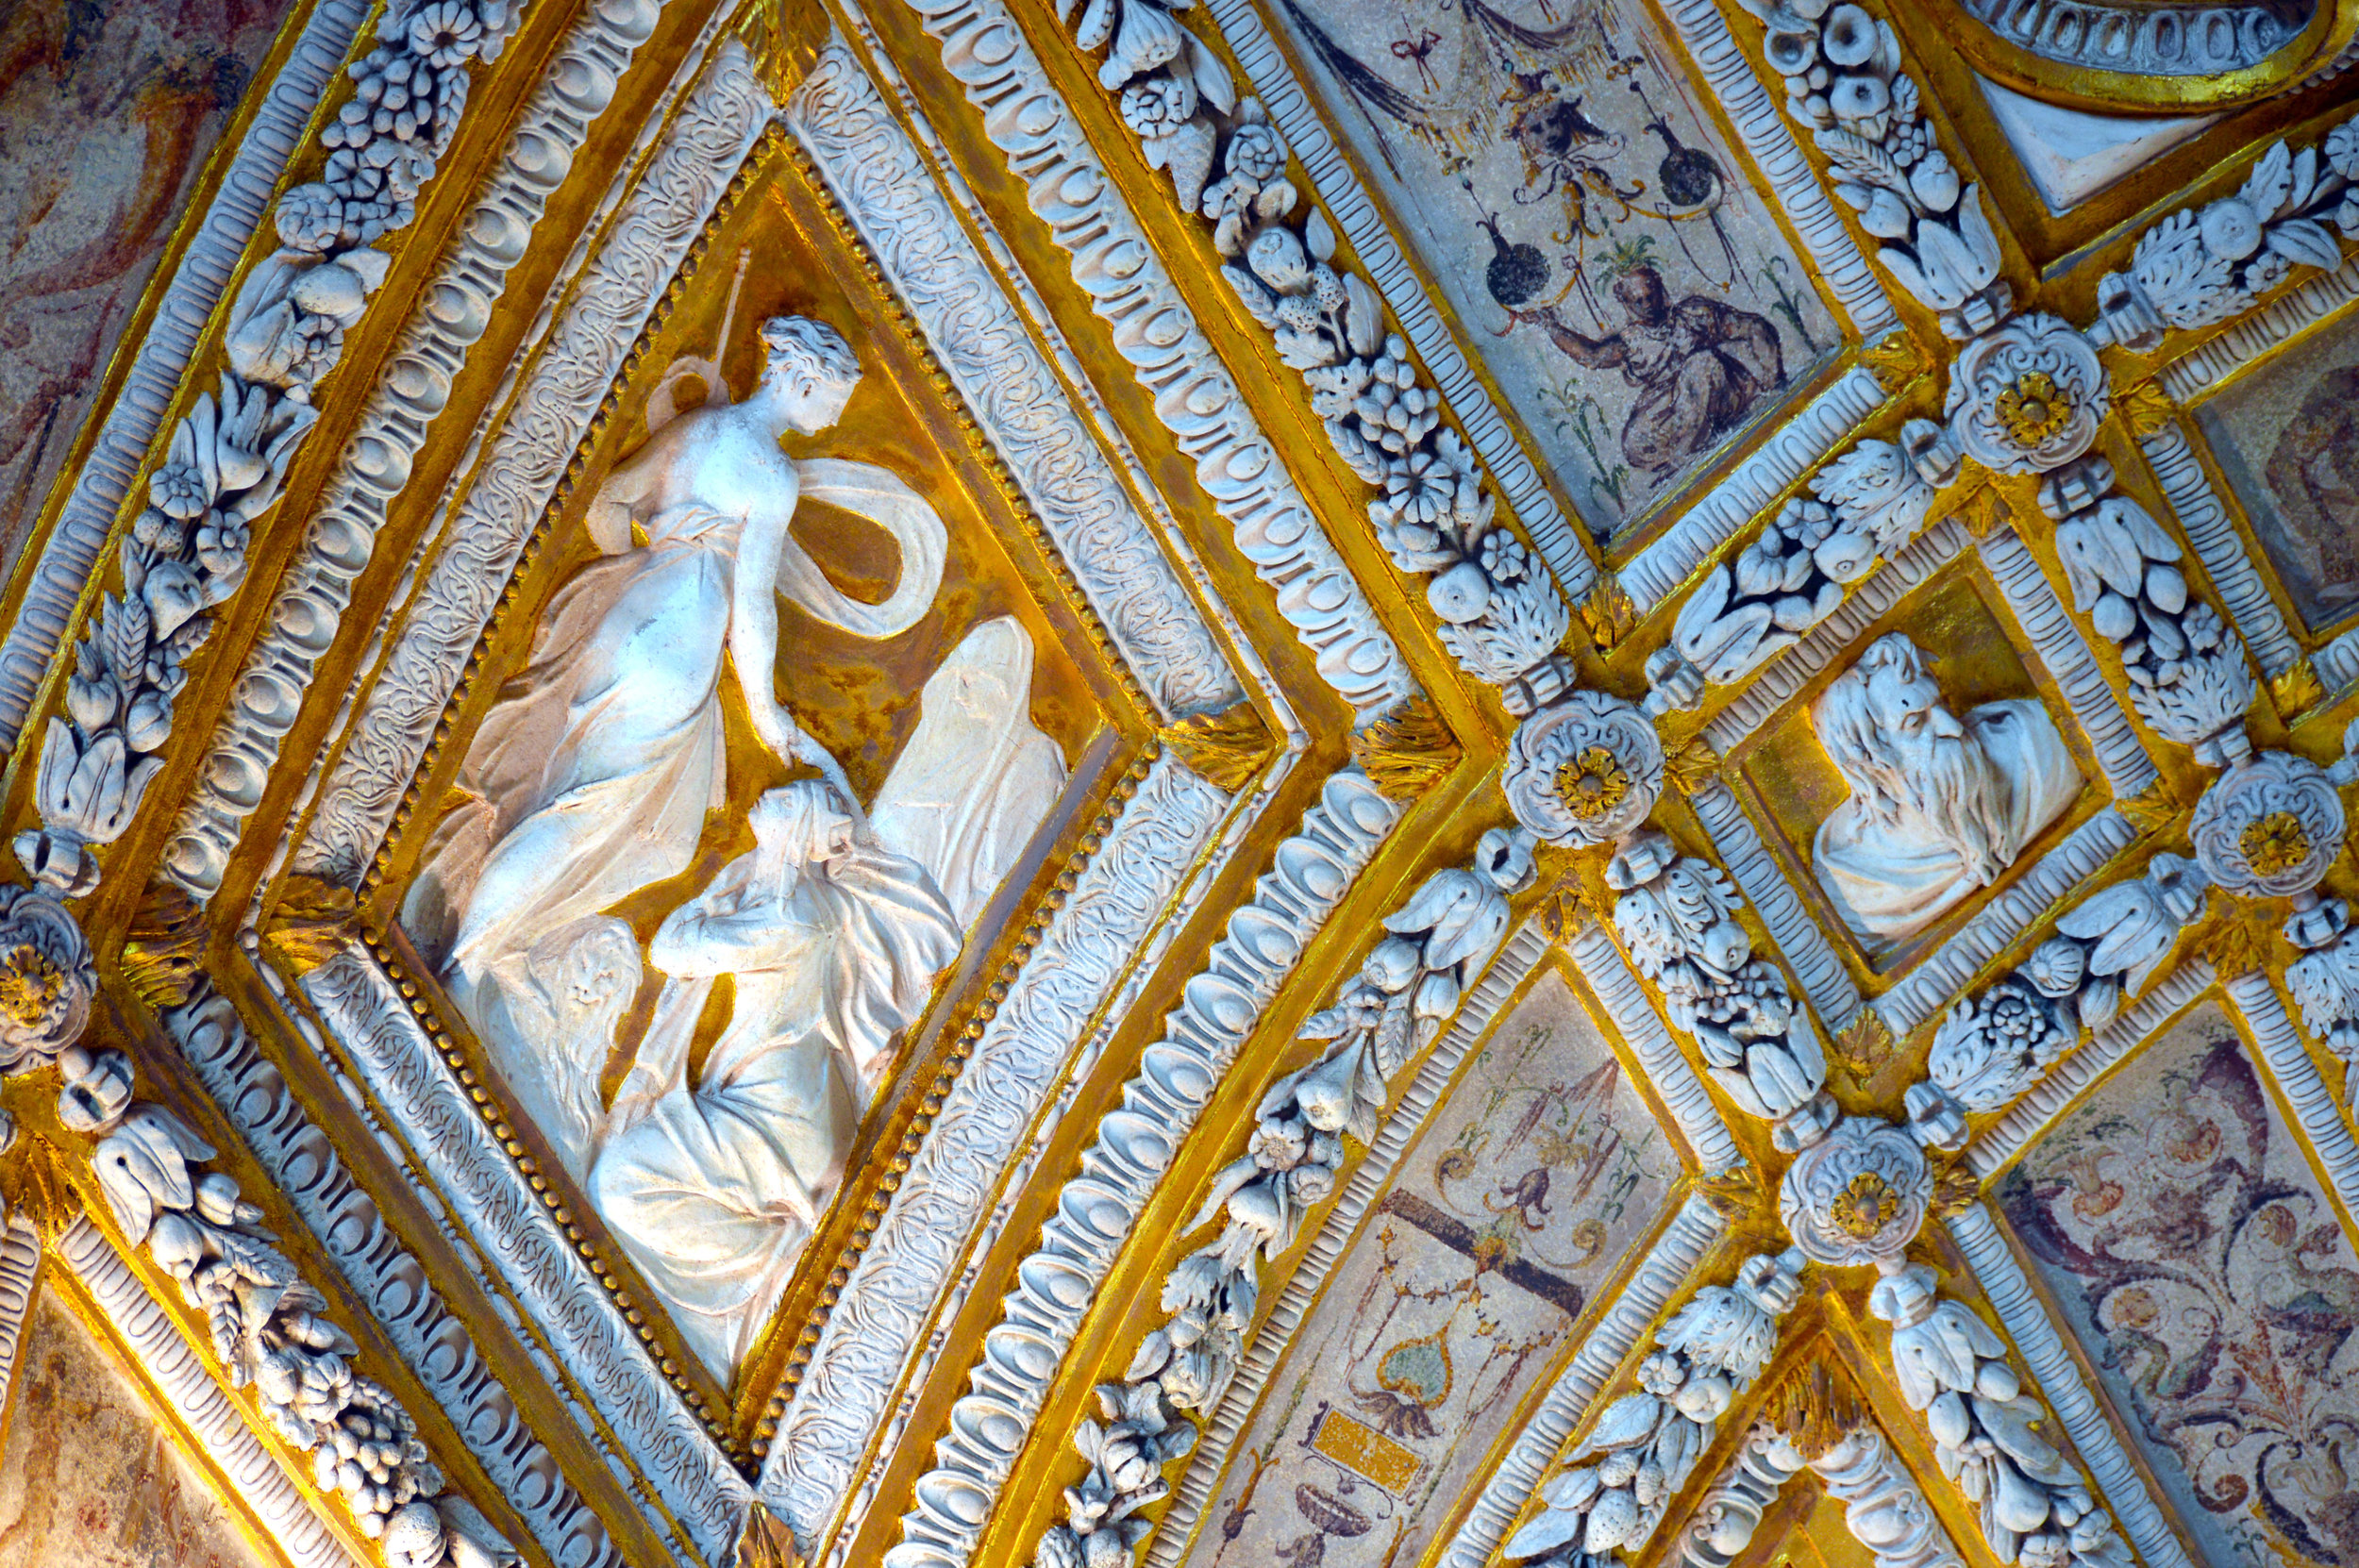 venicecathedrialceiling.jpg